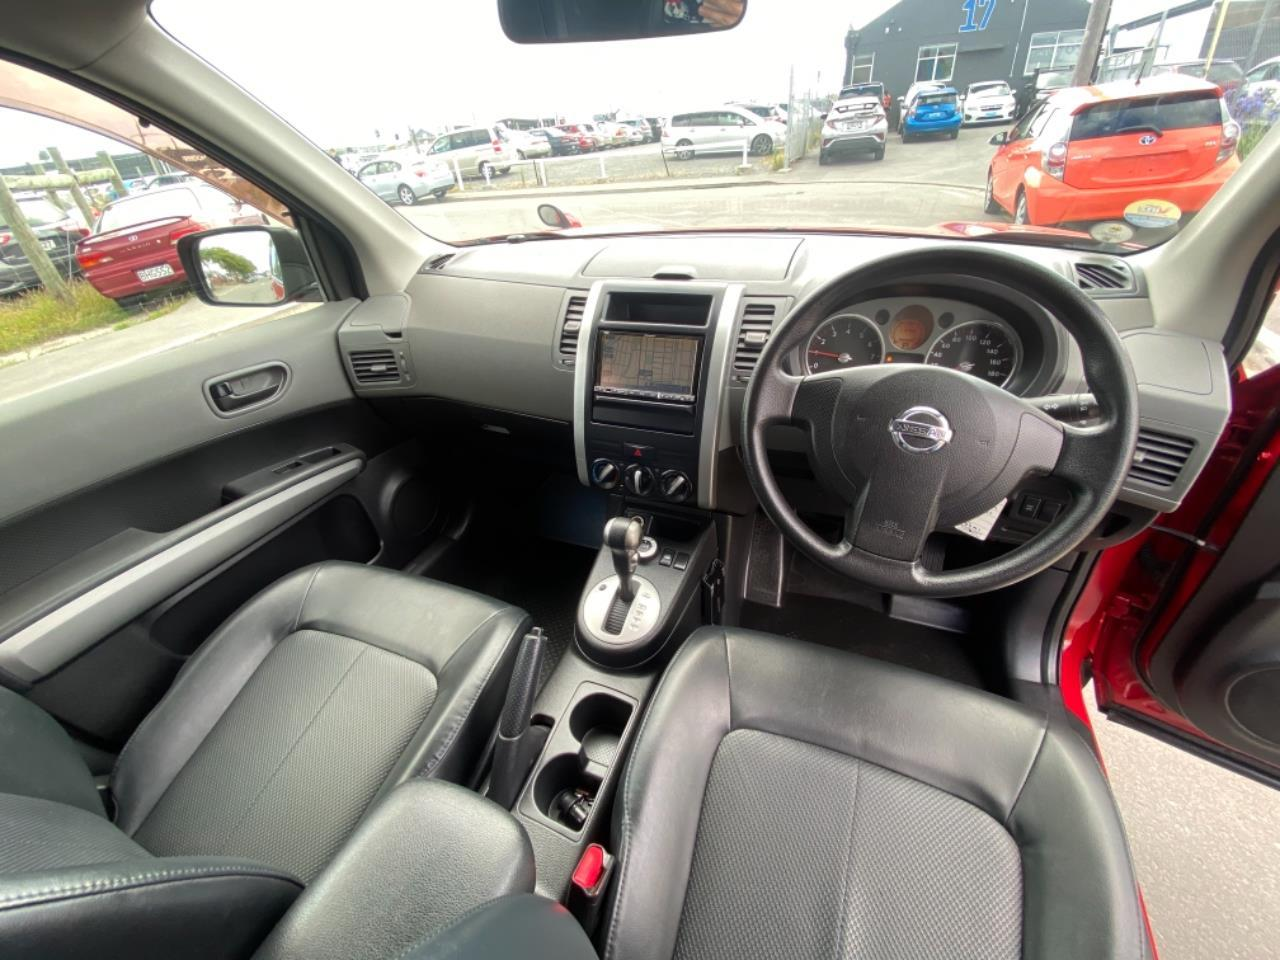 image-9, 2007 Nissan X-TRAIL 20S 4WD at Christchurch